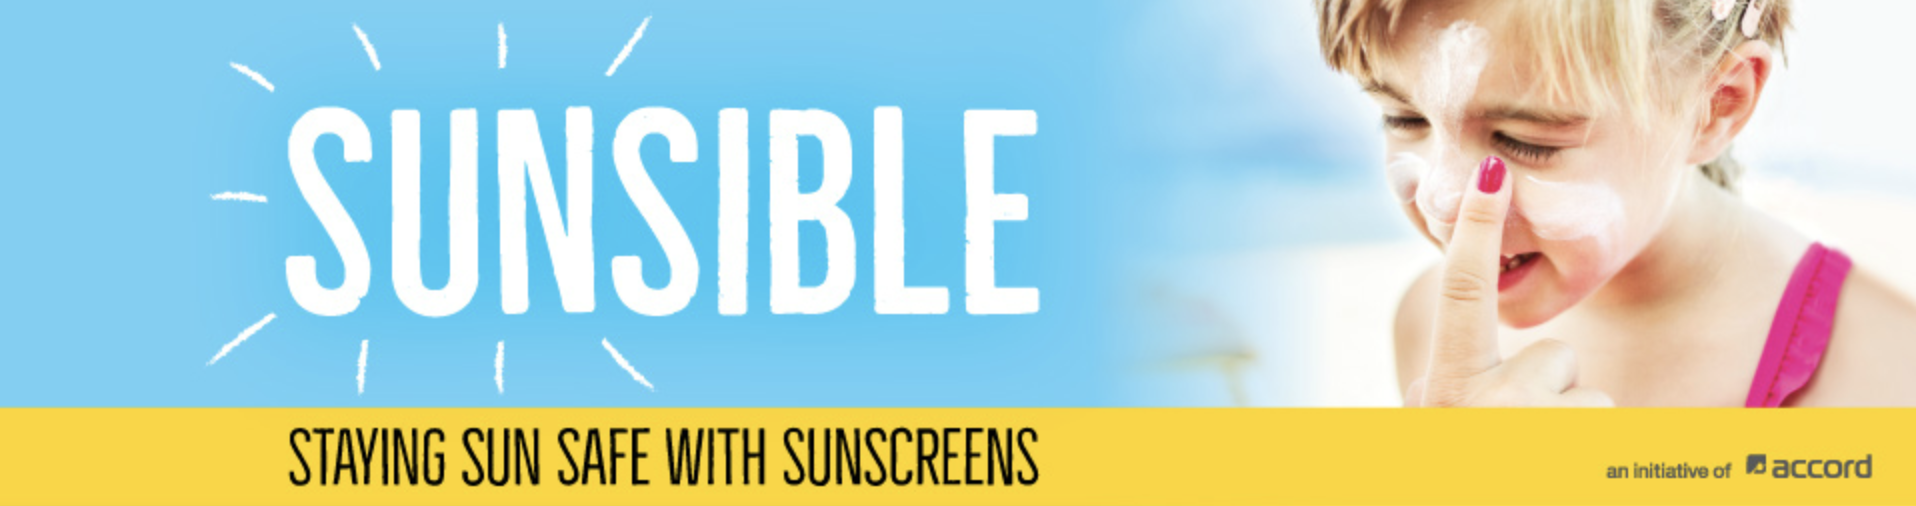 Sunsible - staying sun safe with sunscreens